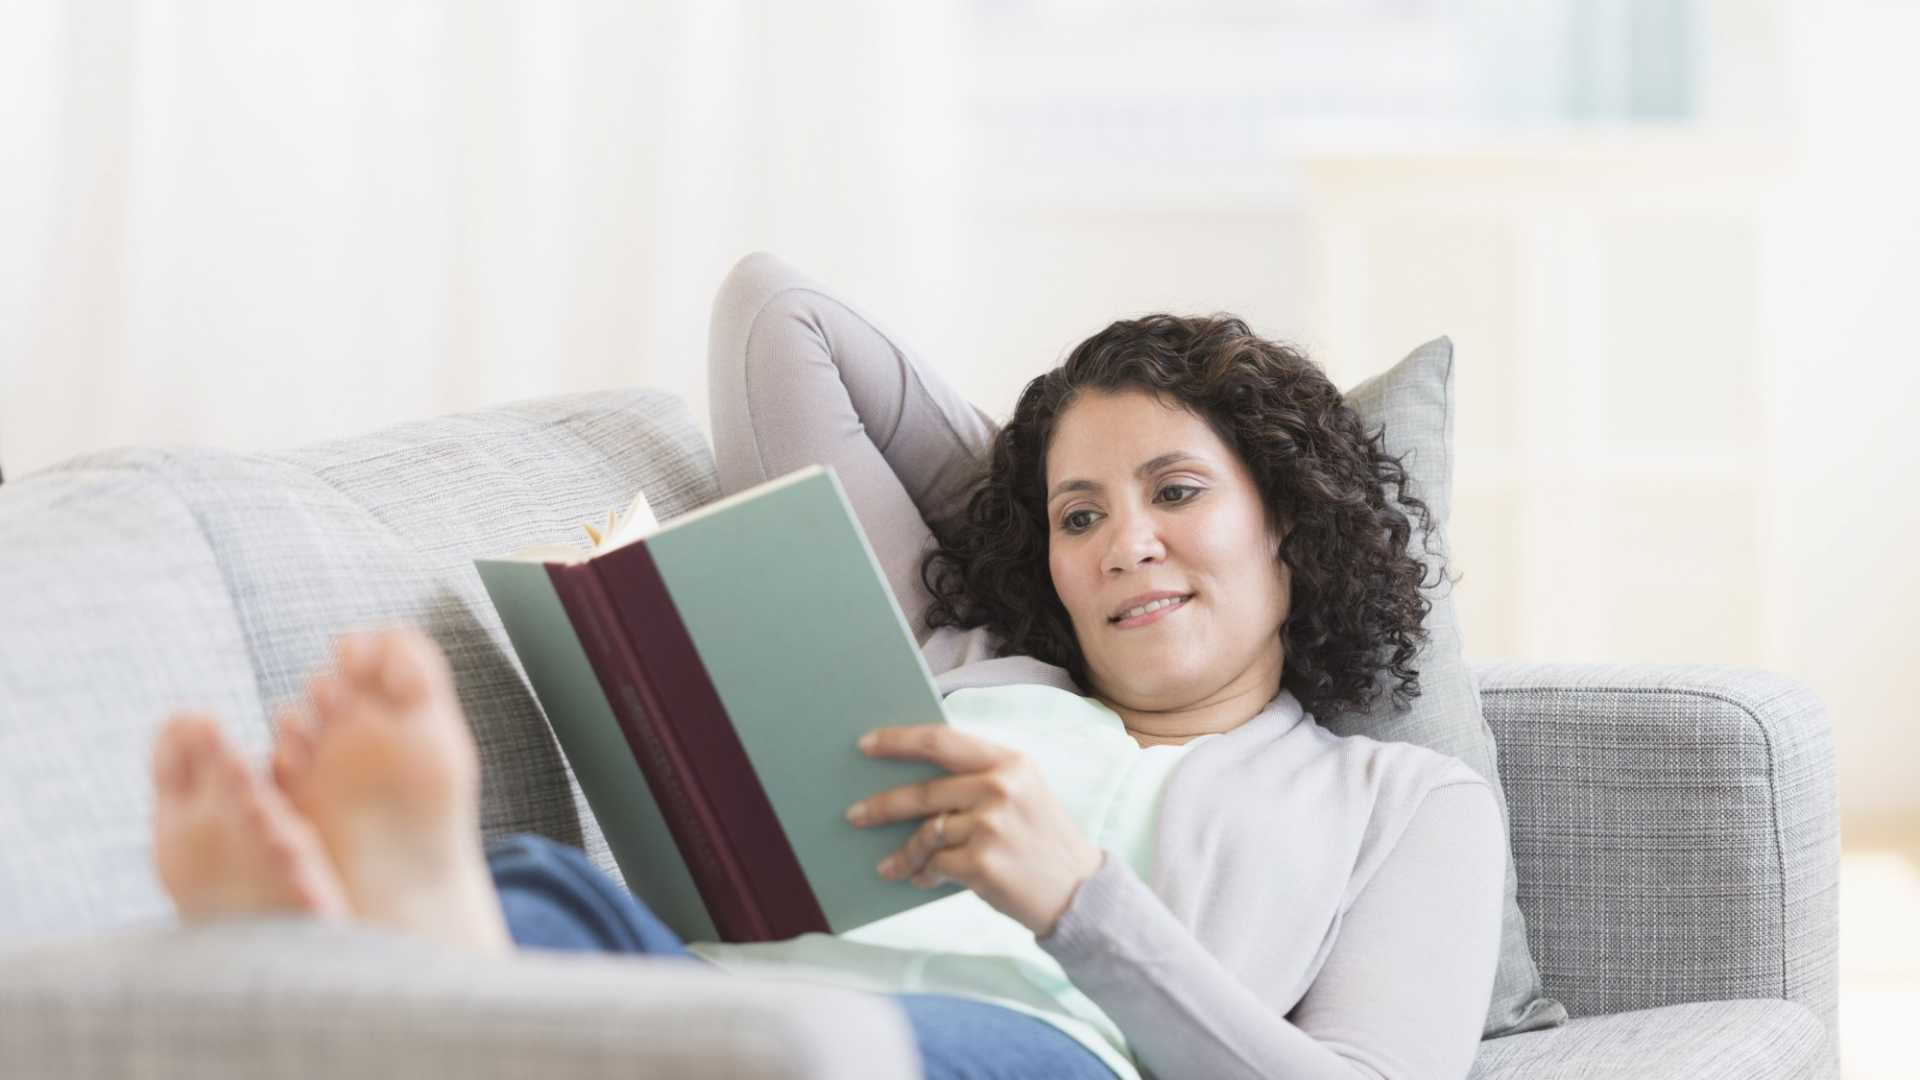 Why Audiobooks Are Not Cheating, According to a Cognitive Scientist